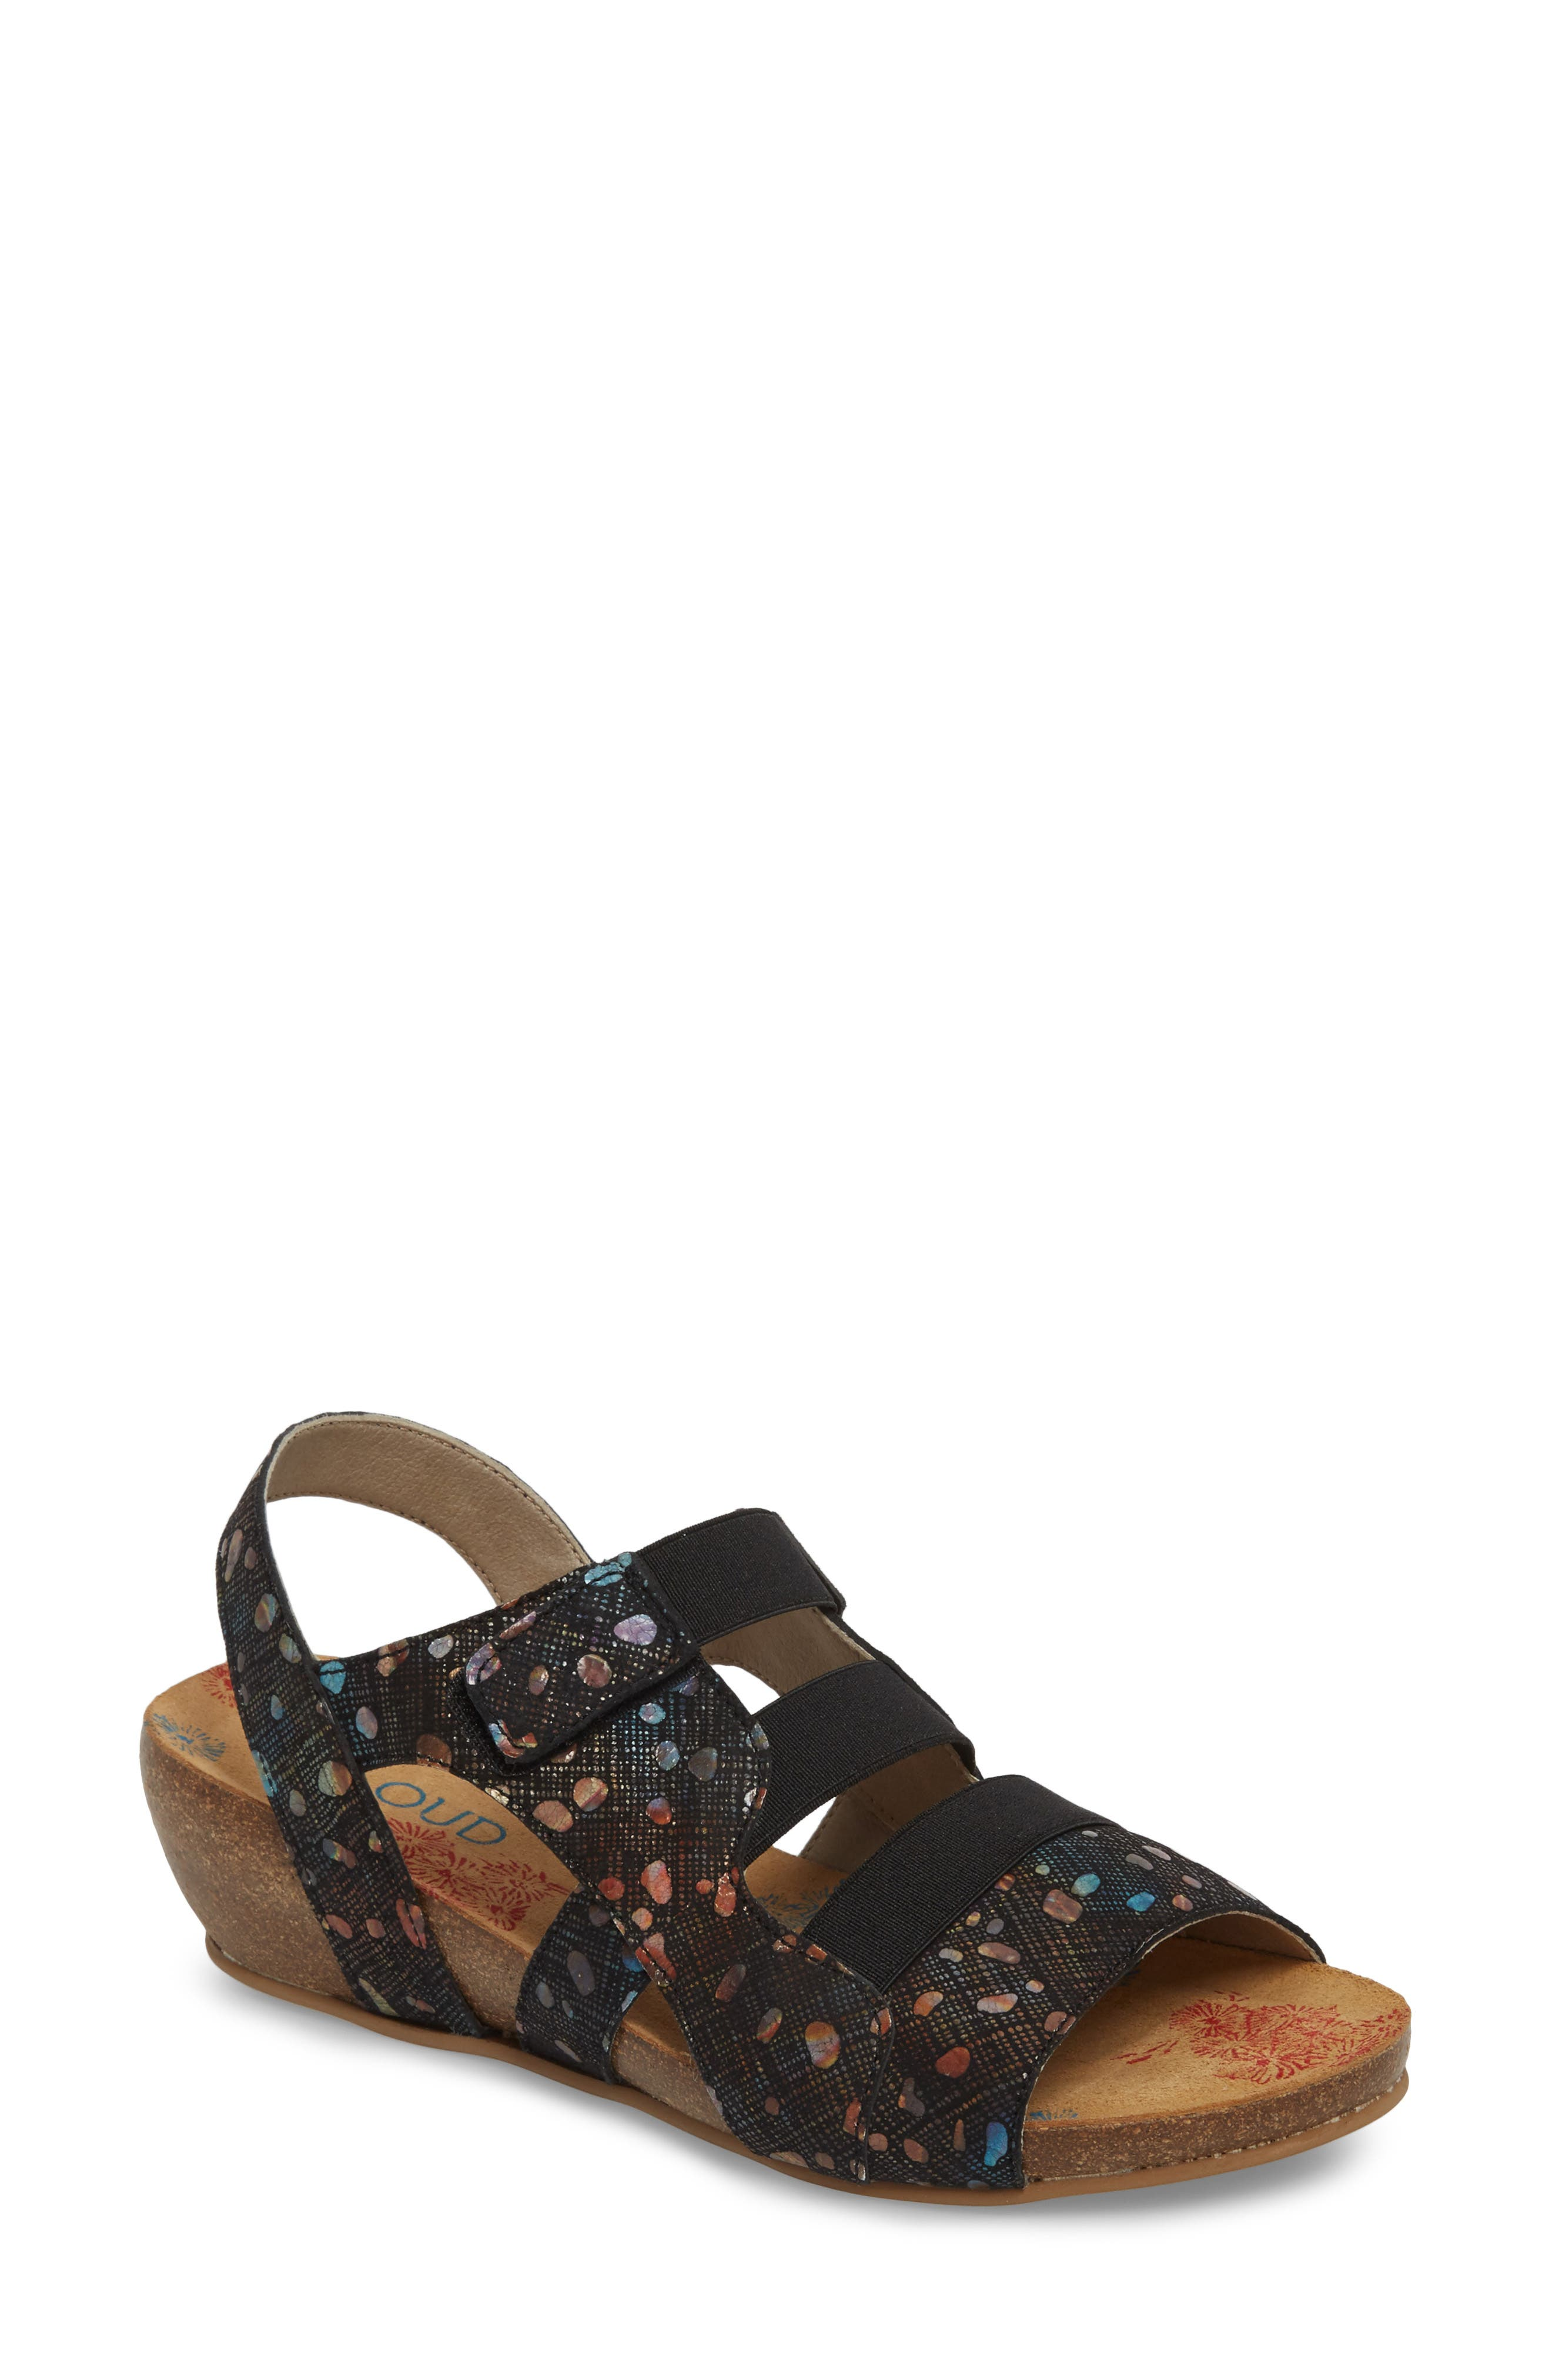 Duffy Wedge Sandal,                         Main,                         color, BUBBLE LEATHER